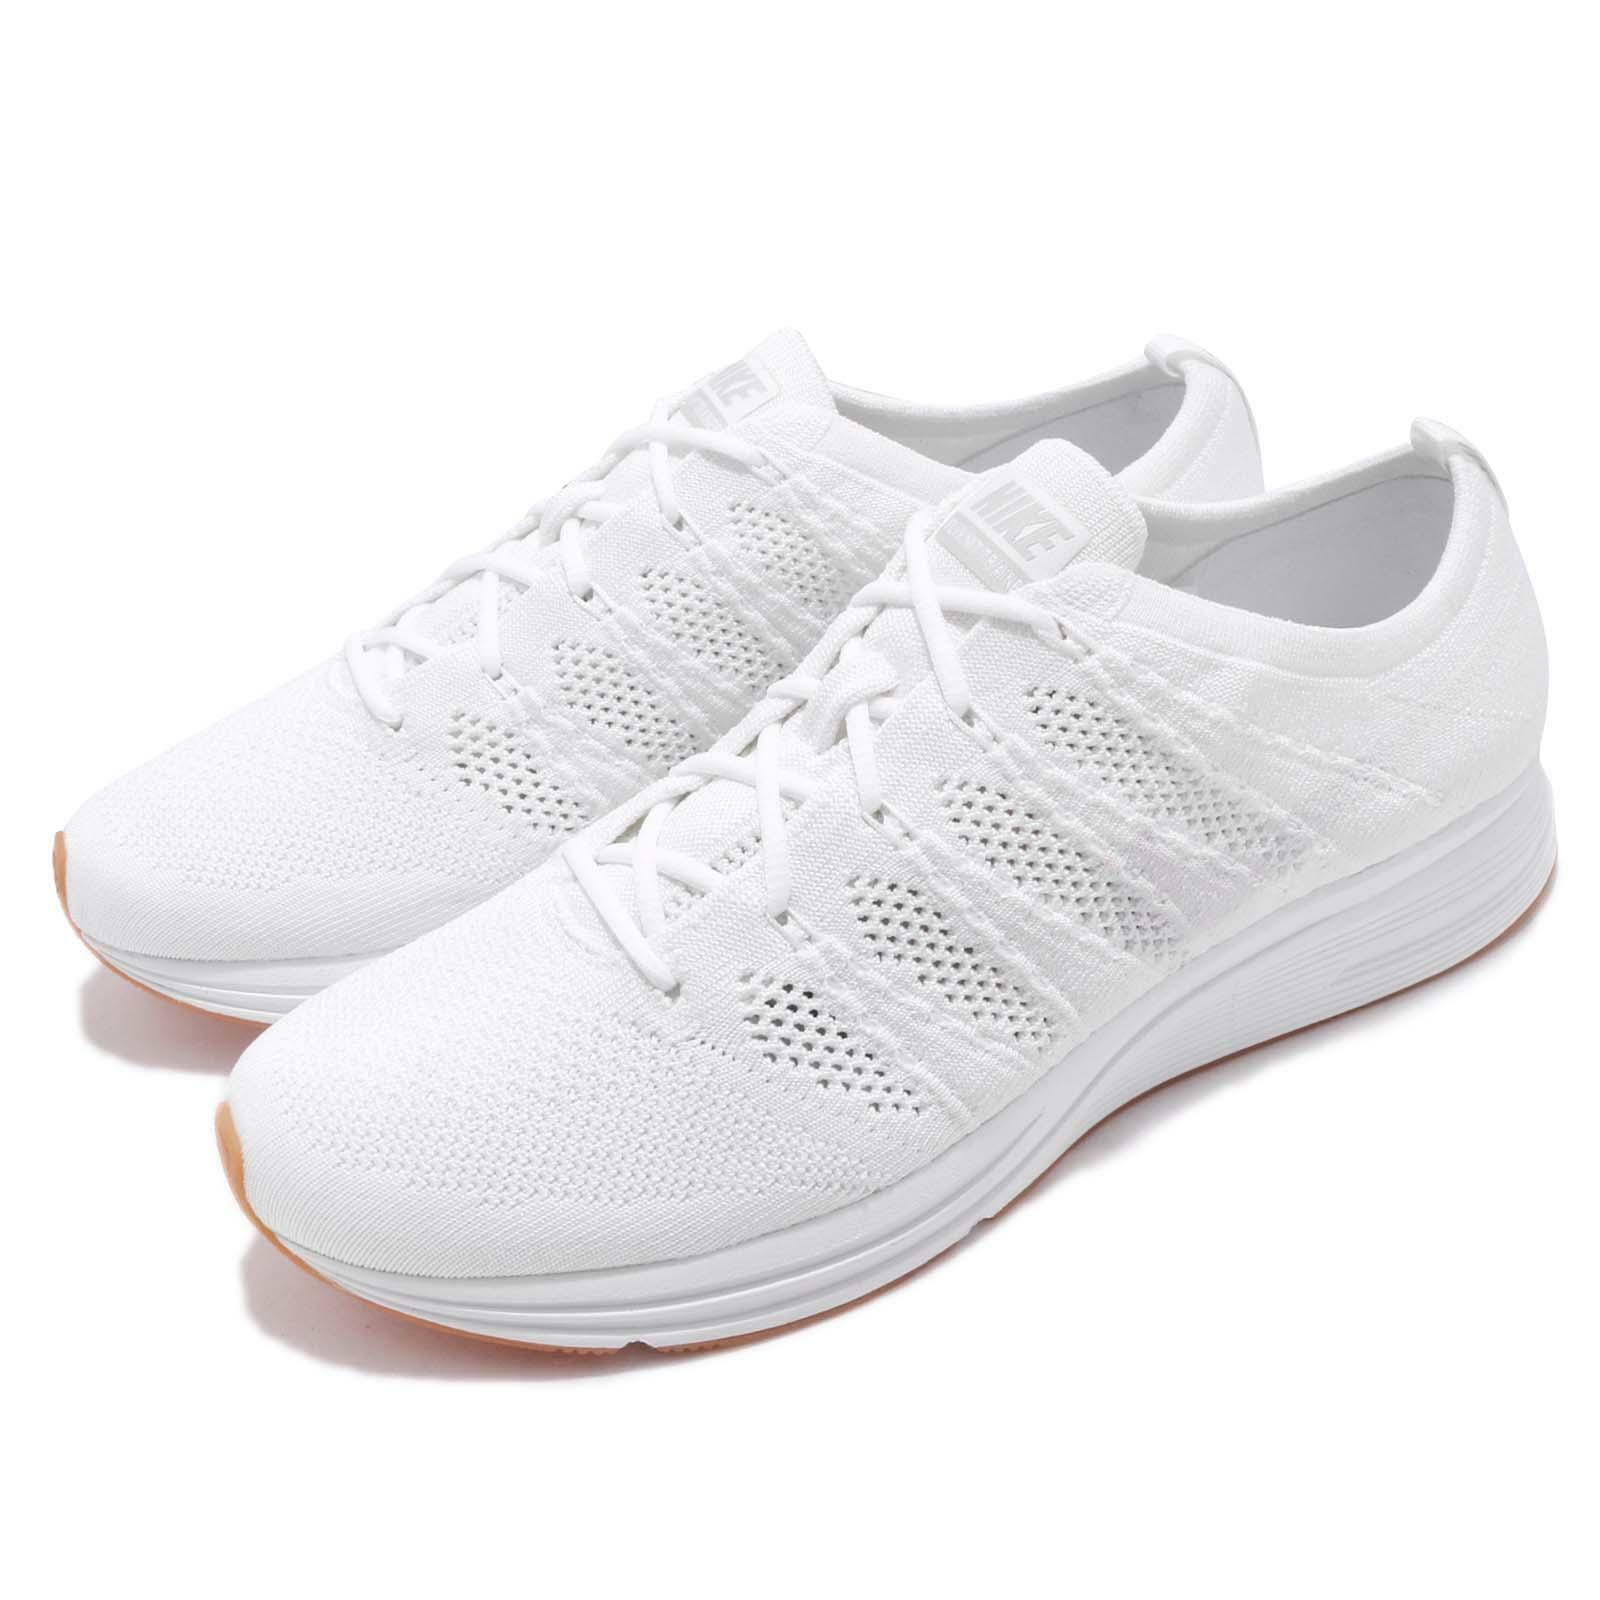 Nike Flyknit Trainer Reflective White Gum Men Running shoes Sneakers AH8396-102